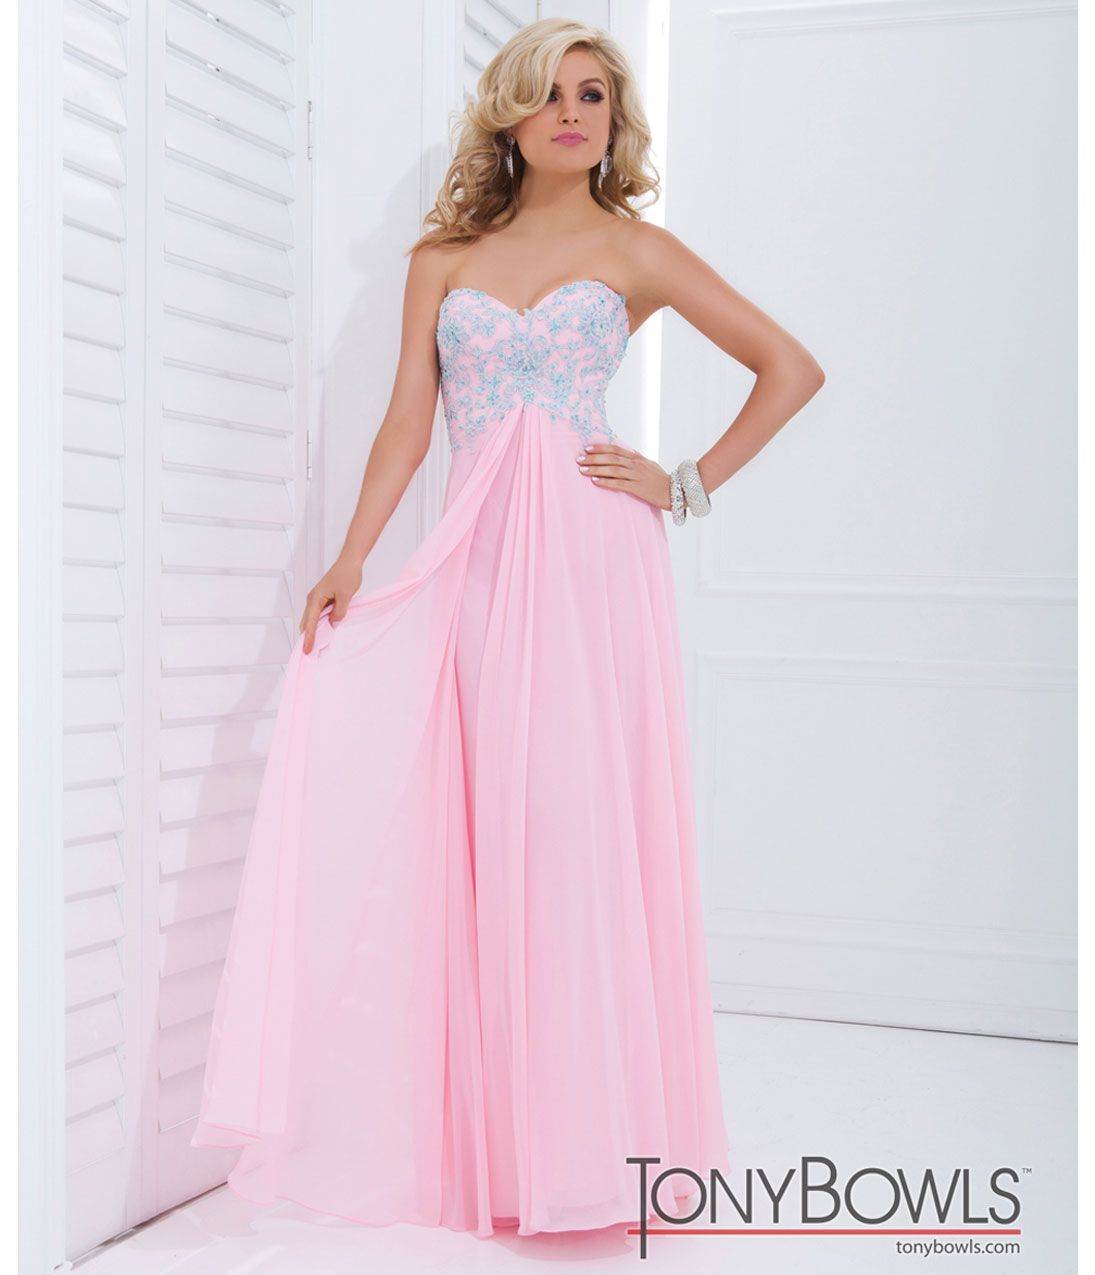 Tony Bowls 2014 Prom Dresses - Light Pink w/ Blue Floral Lace ...